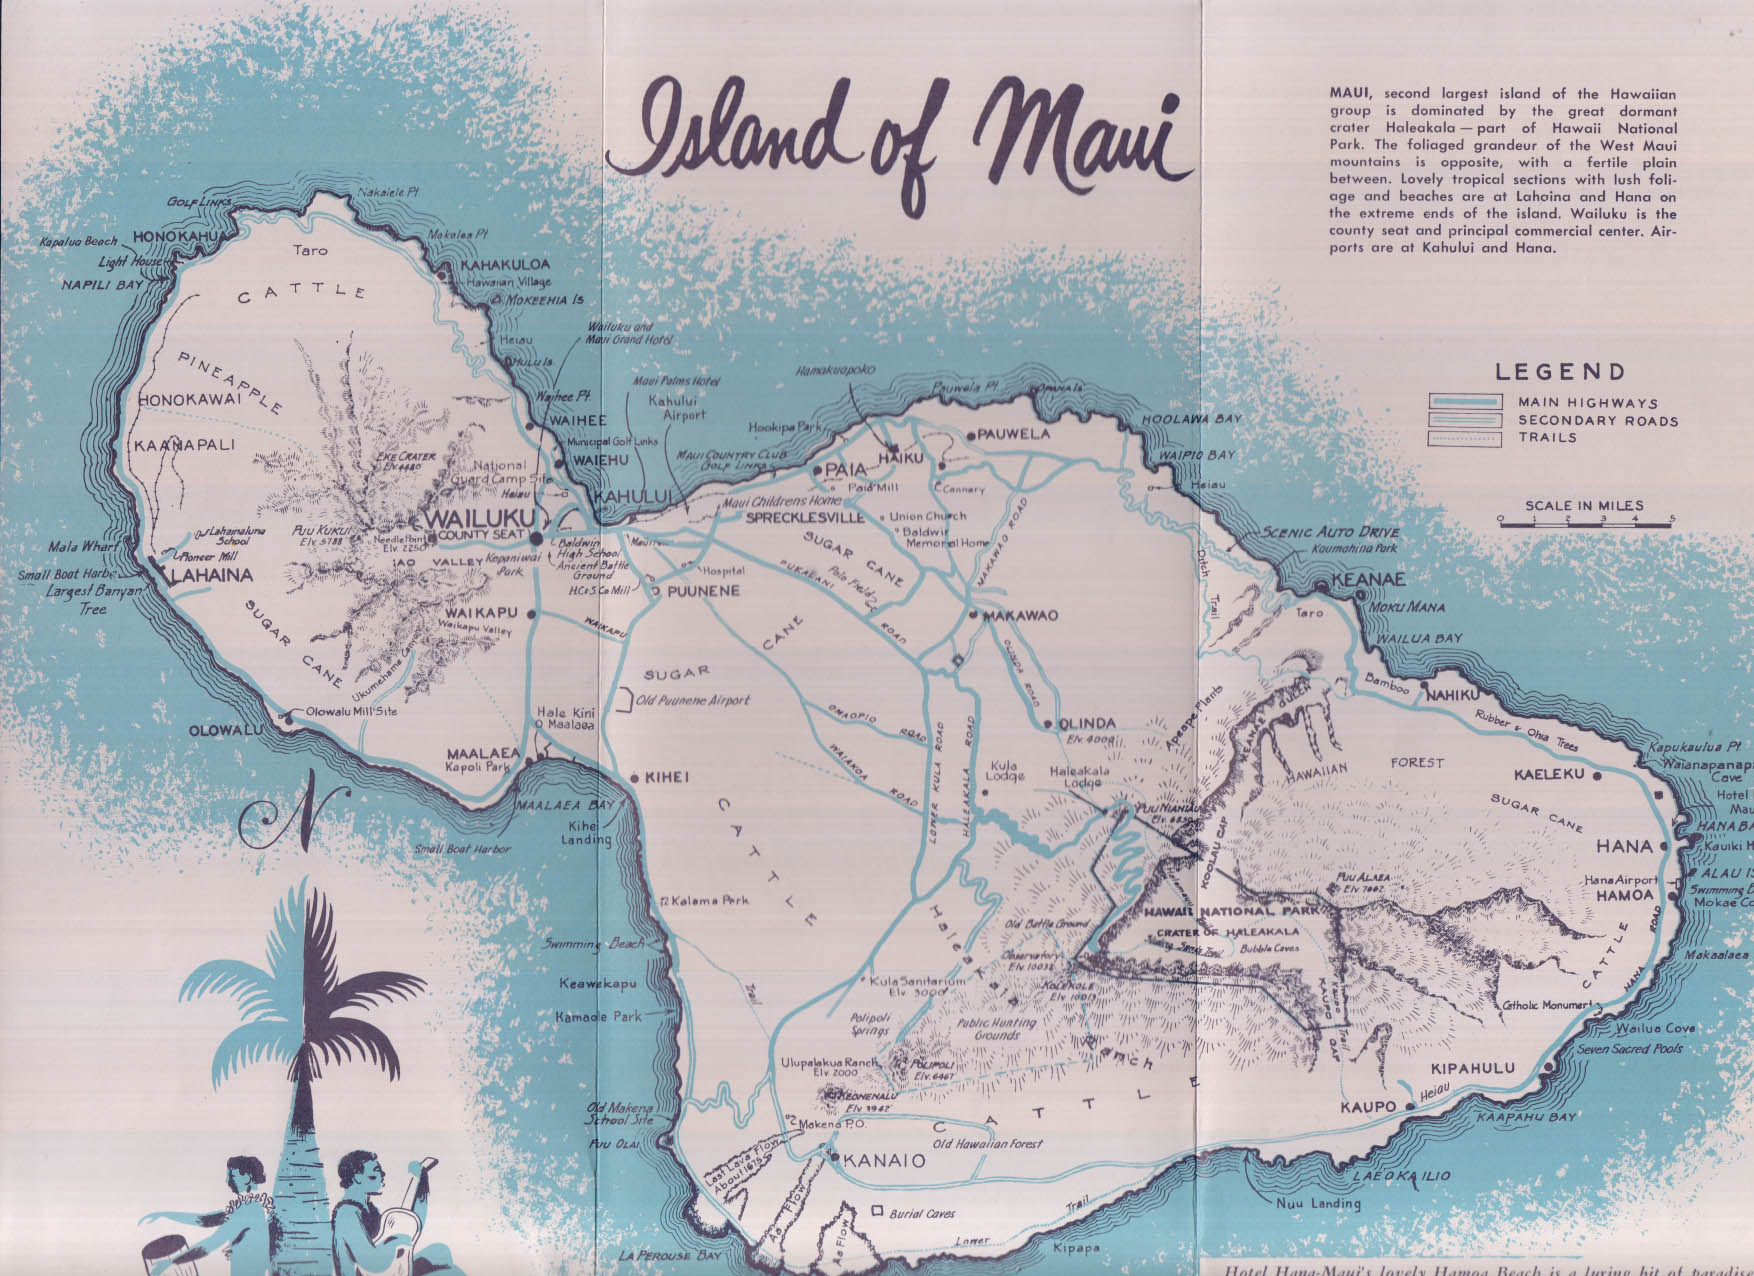 Maui: Valley Island in Hawaii tourist folder 1950s